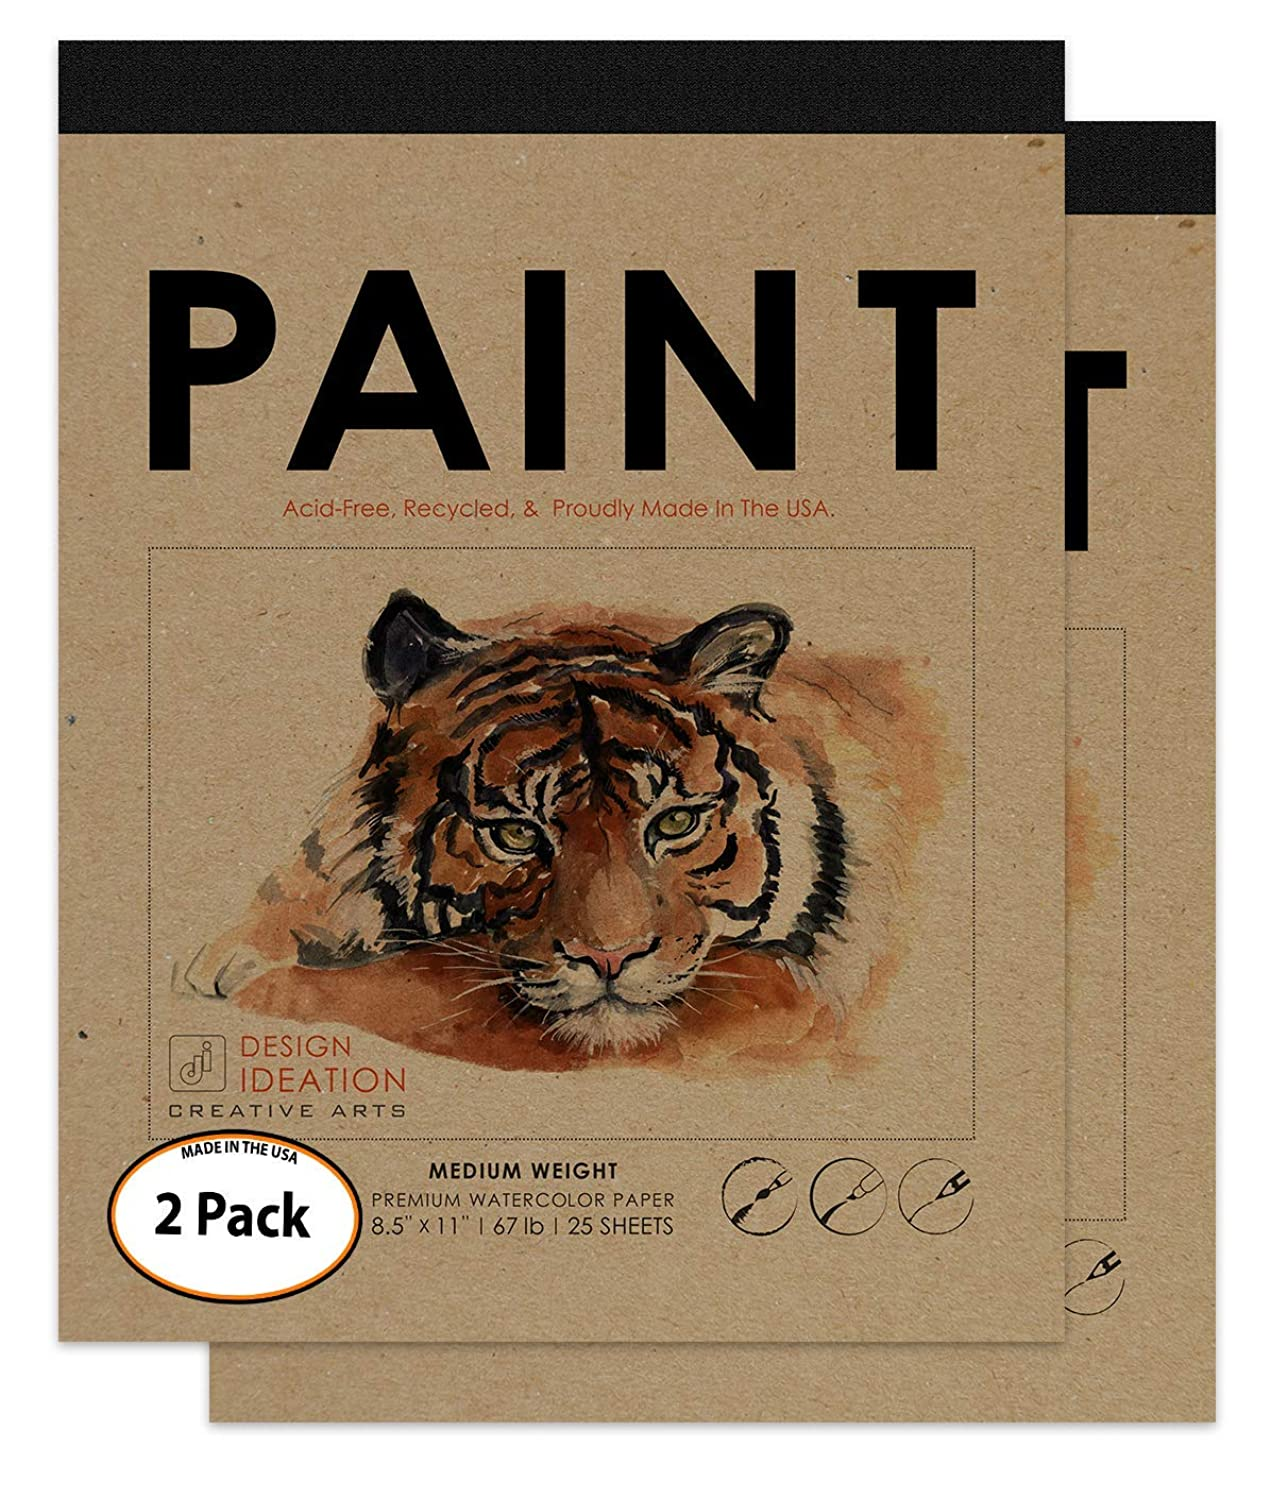 Design Ideation PAINT : Premium Paper Watercolor Pad for Pencil, Ink, Marker and Watercolor Paints. Great for Art, Design and Education. (2 Pads)